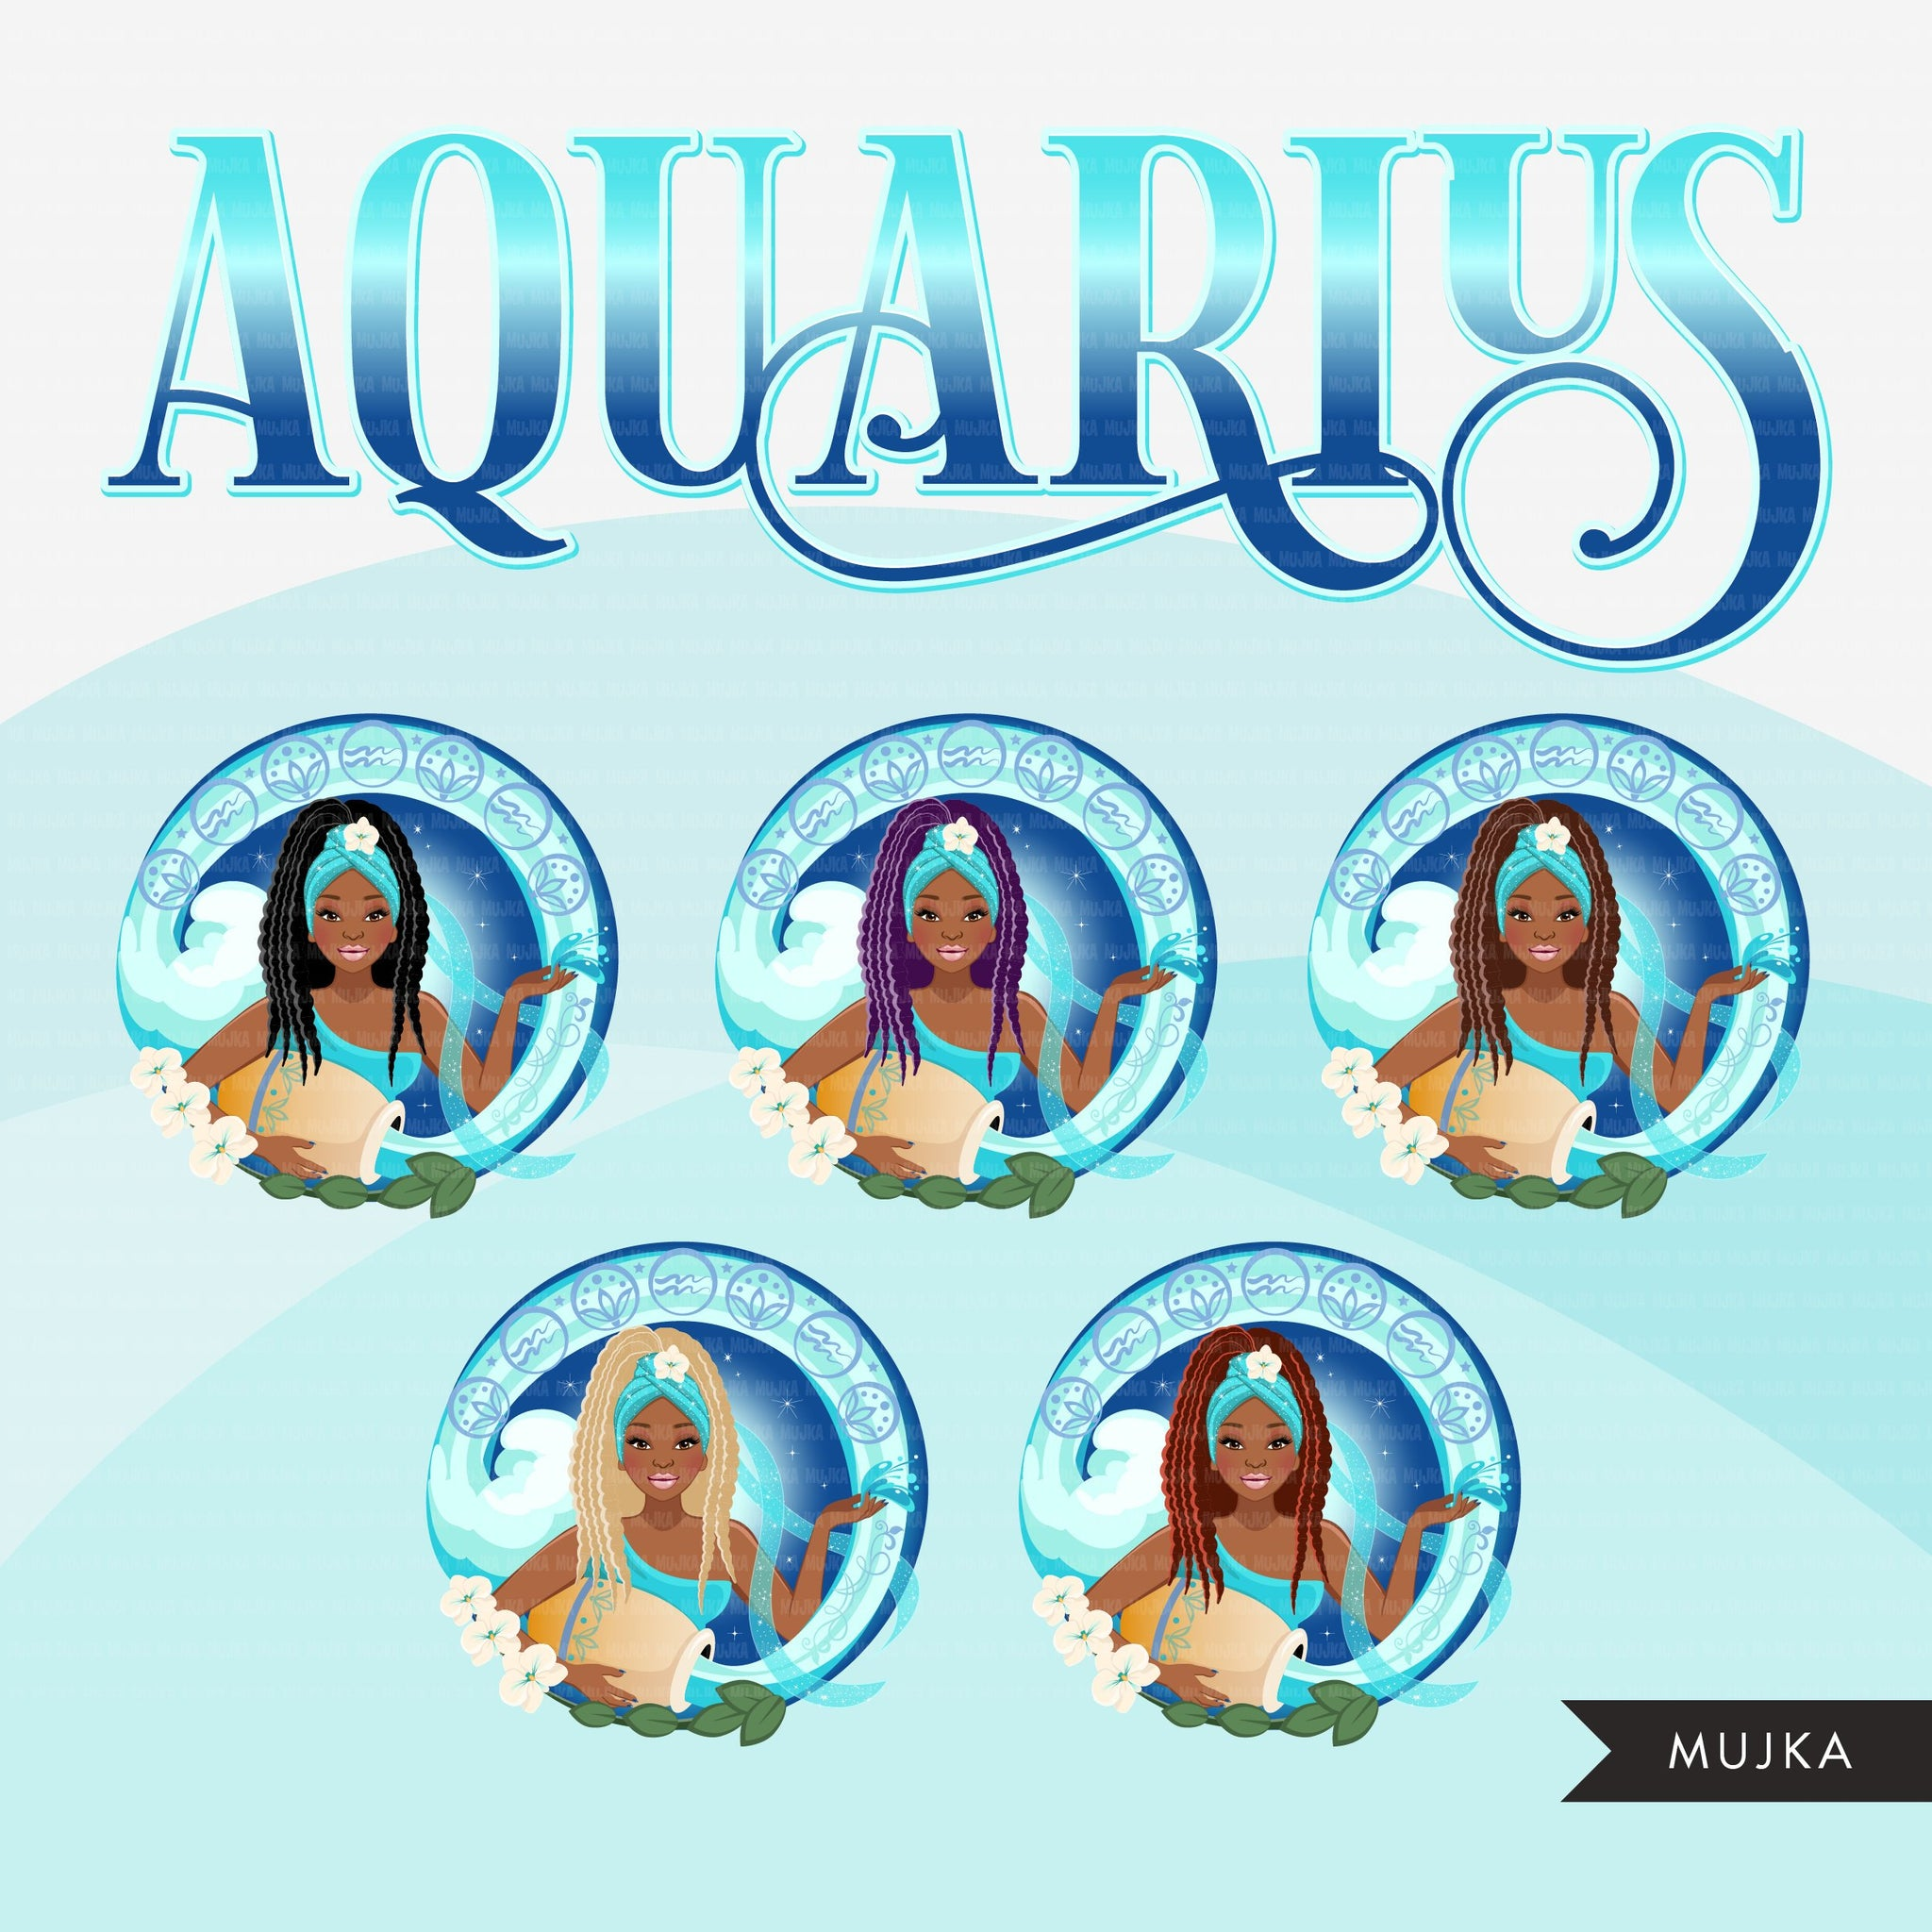 Zodiac Aquarius Clipart, Png digital download, Sublimation Graphics for Cricut & Cameo, Black Braid Hair Woman Horoscope sign designs